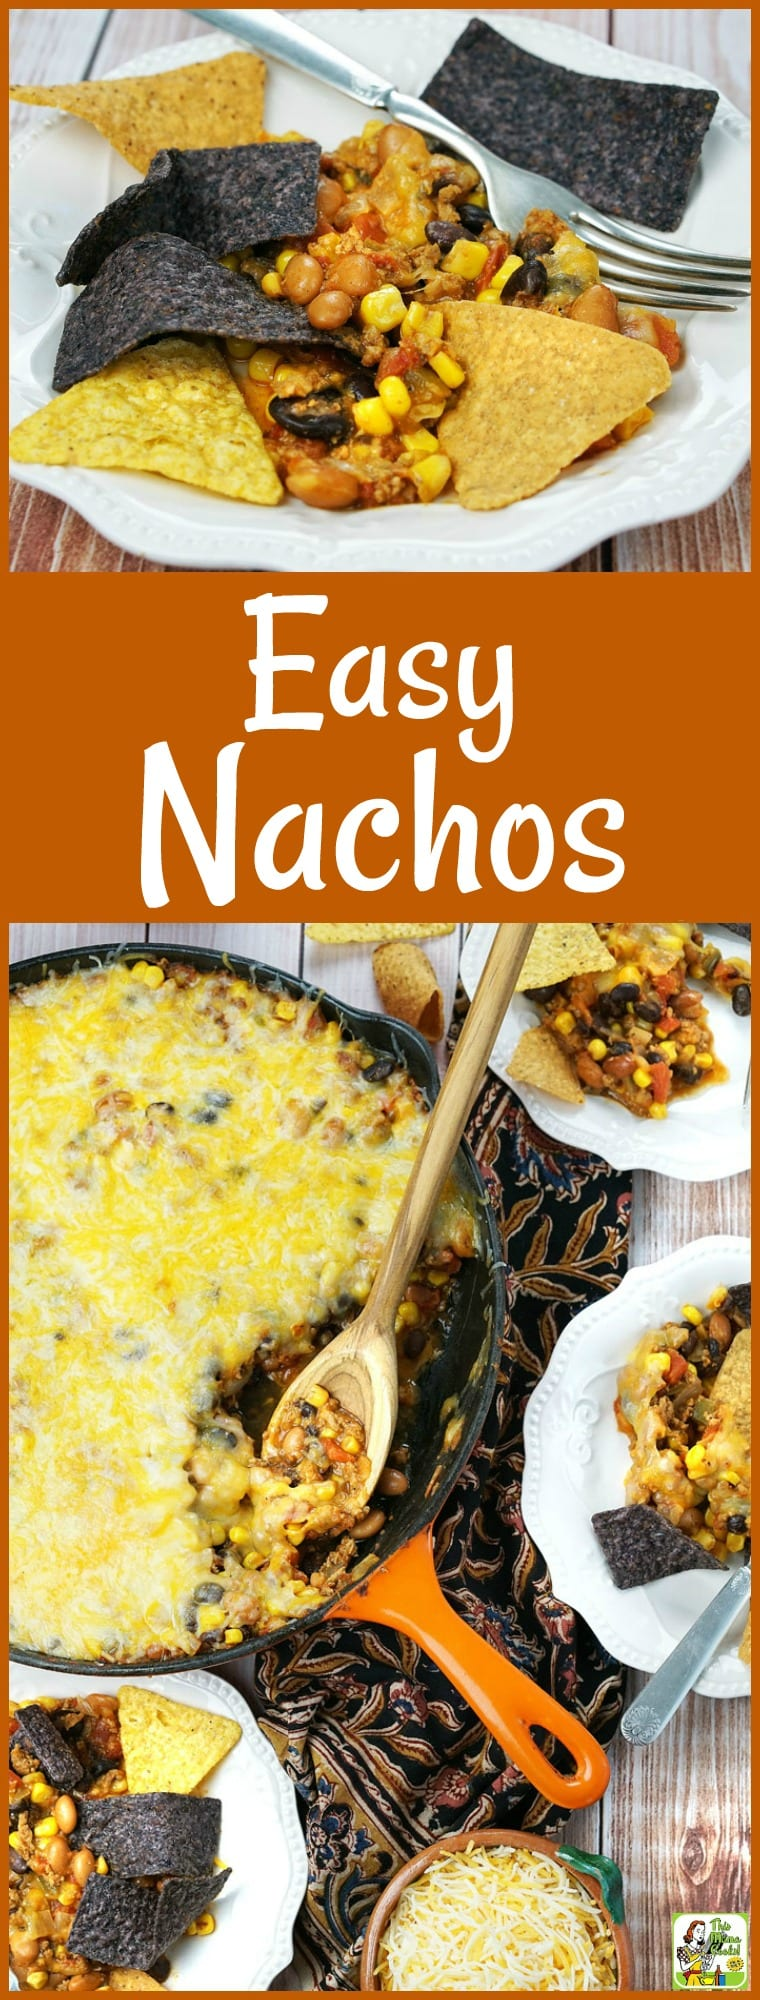 Looking for an Easy Nachos Recipe to make for a party? Try this nachos dip recipe that can be made in less than 20 minutes and served in a skillet! It\'s packed with healthy beans and lean ground turkey, so it\'s guilt-free dinner dish your family will love. #nachos #dip #party #appetizer #partyfood #cheese #glutenfree #turkey #beans #appetizerrecipes